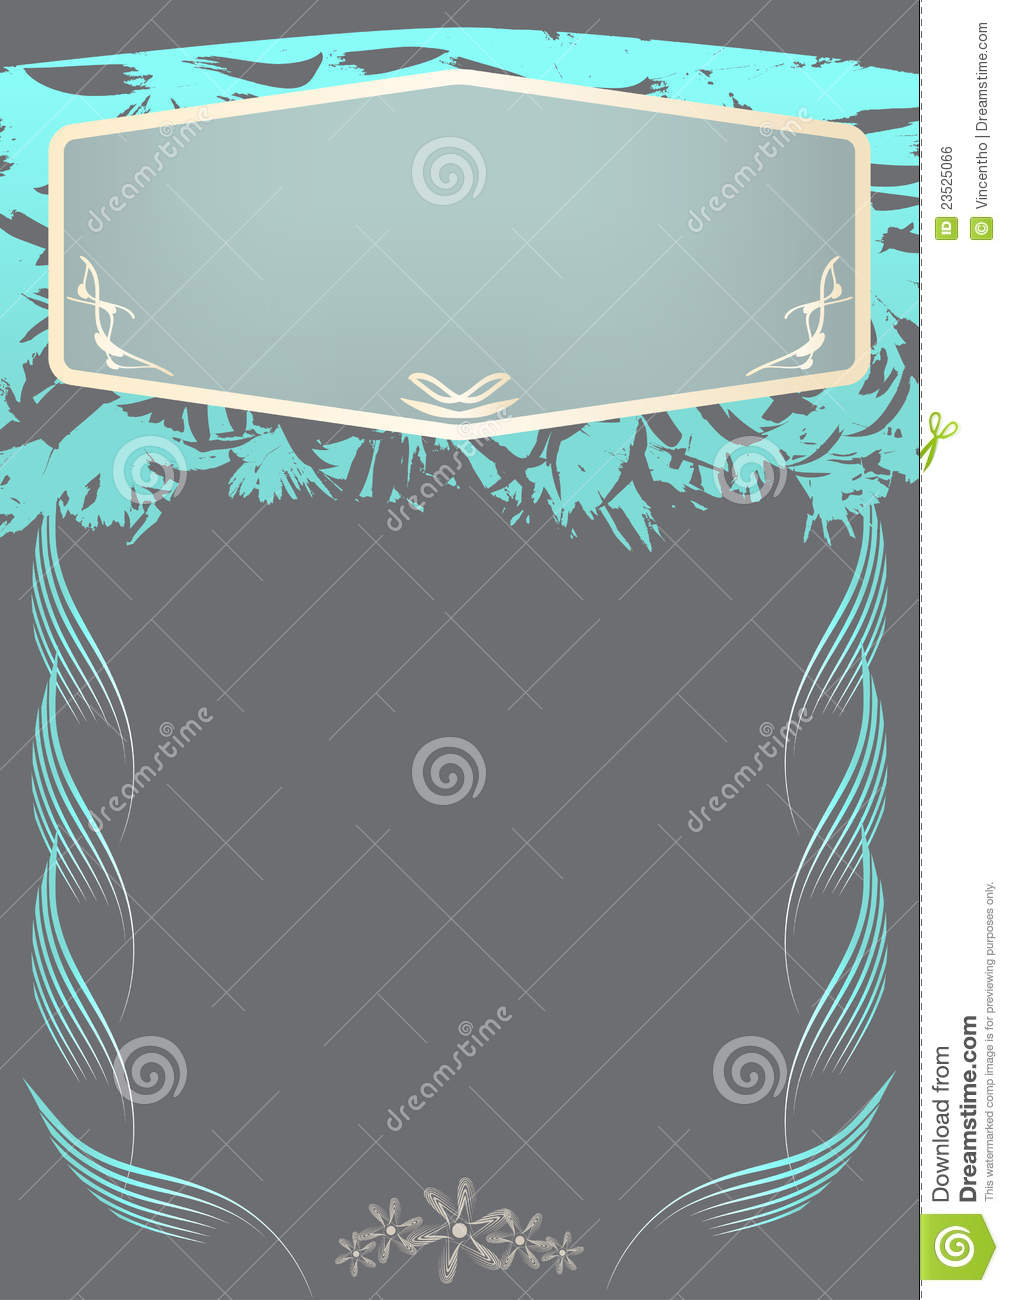 special invitation card design royalty free stock image